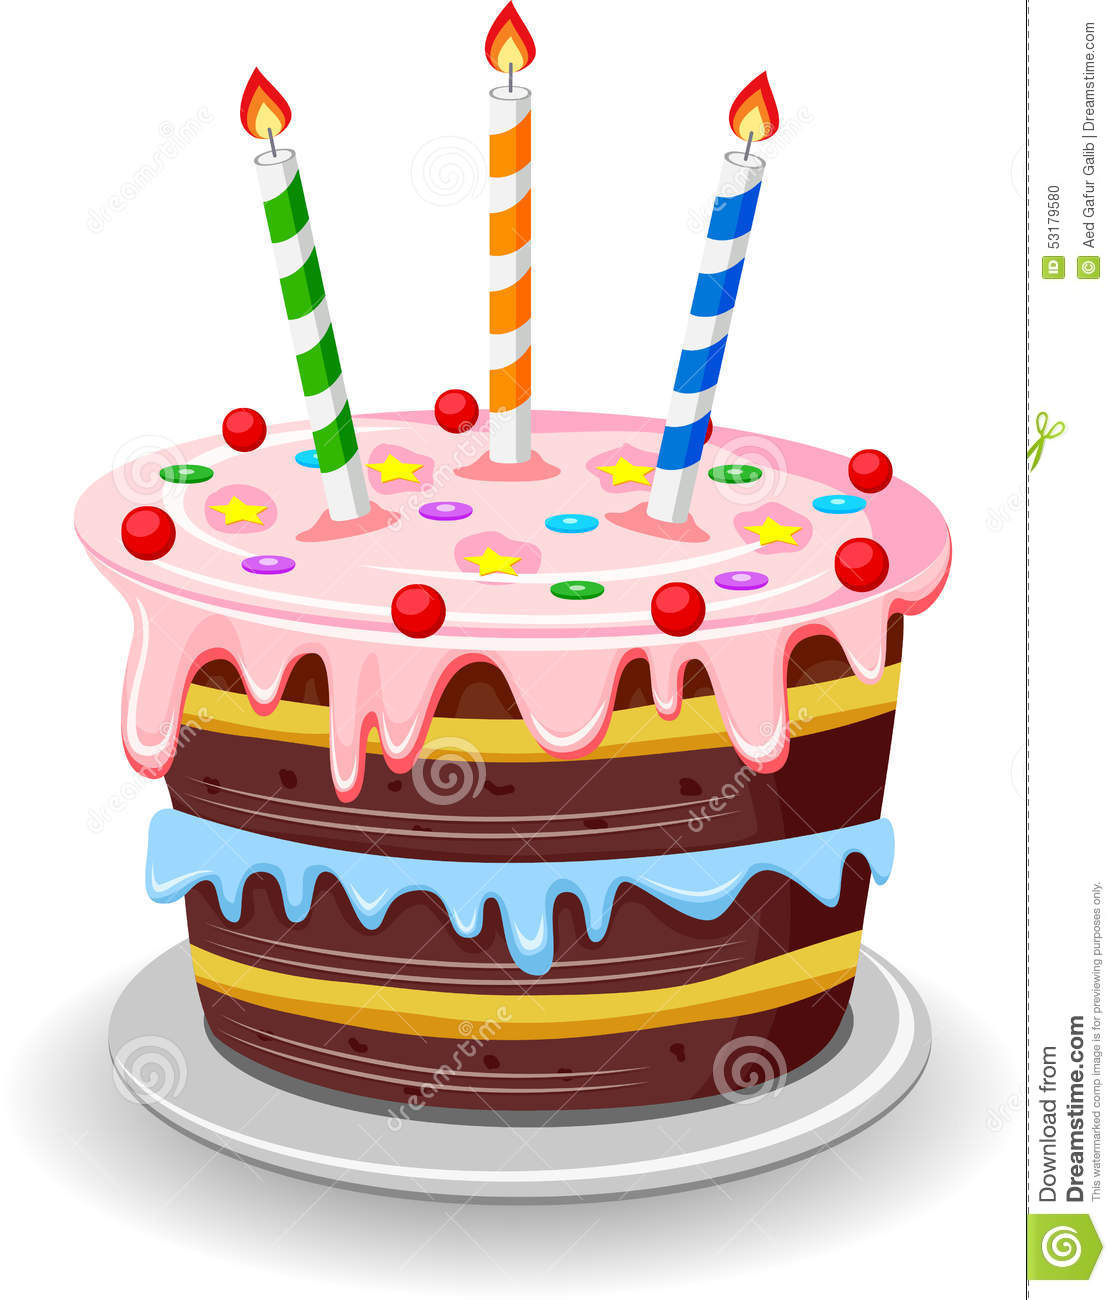 Birthday Cake Stock Vector - Image: 53179580